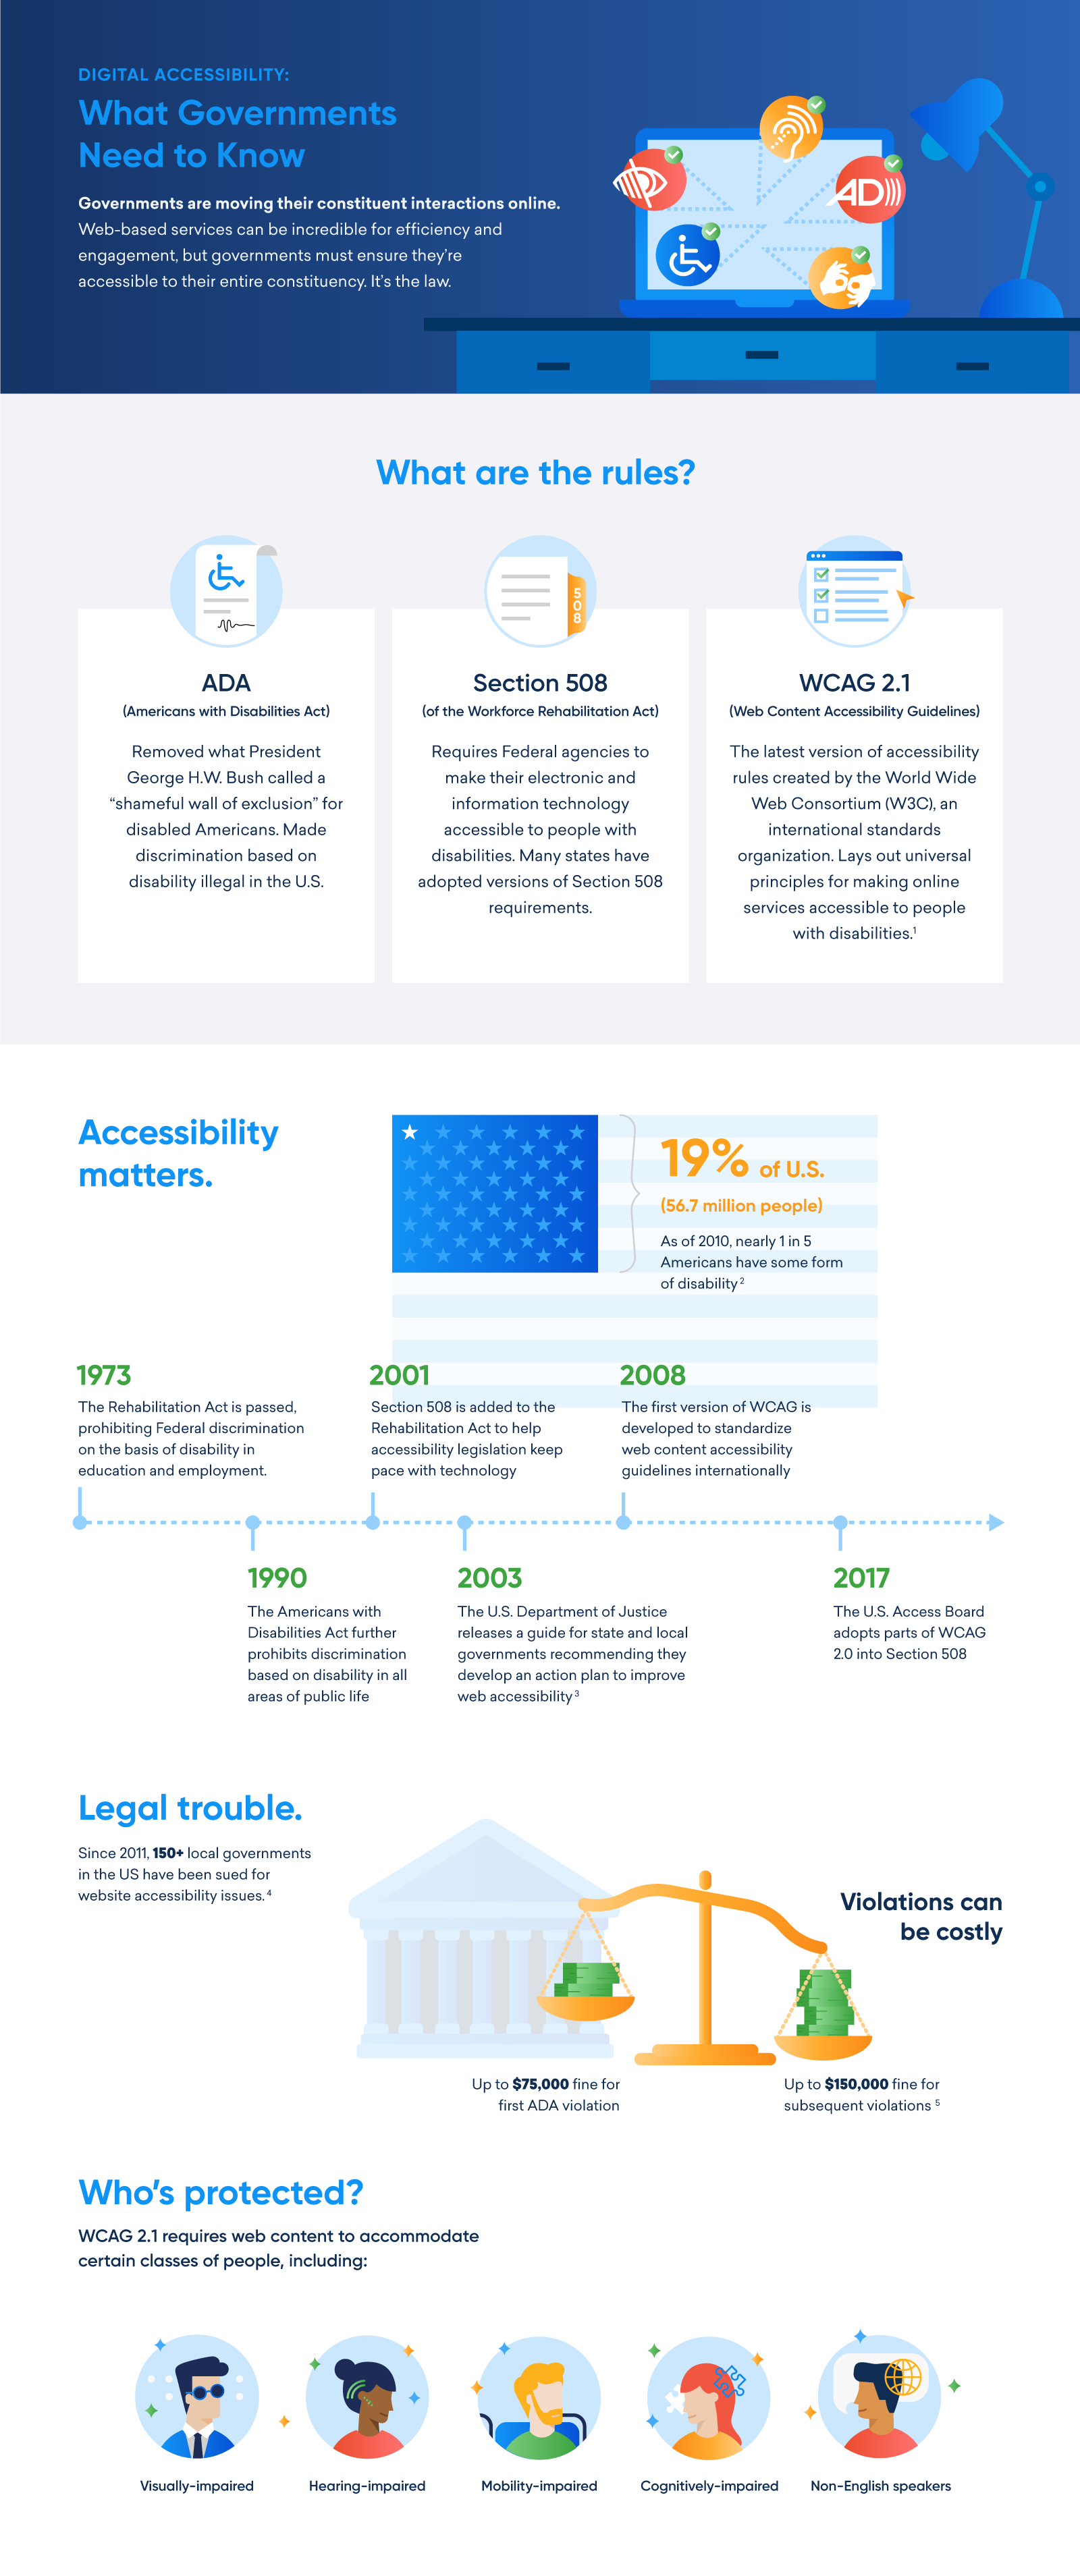 An infographic by SeamlessDocs that illustrates key considerations for government agencies at all levels with regard to digital accessibility.